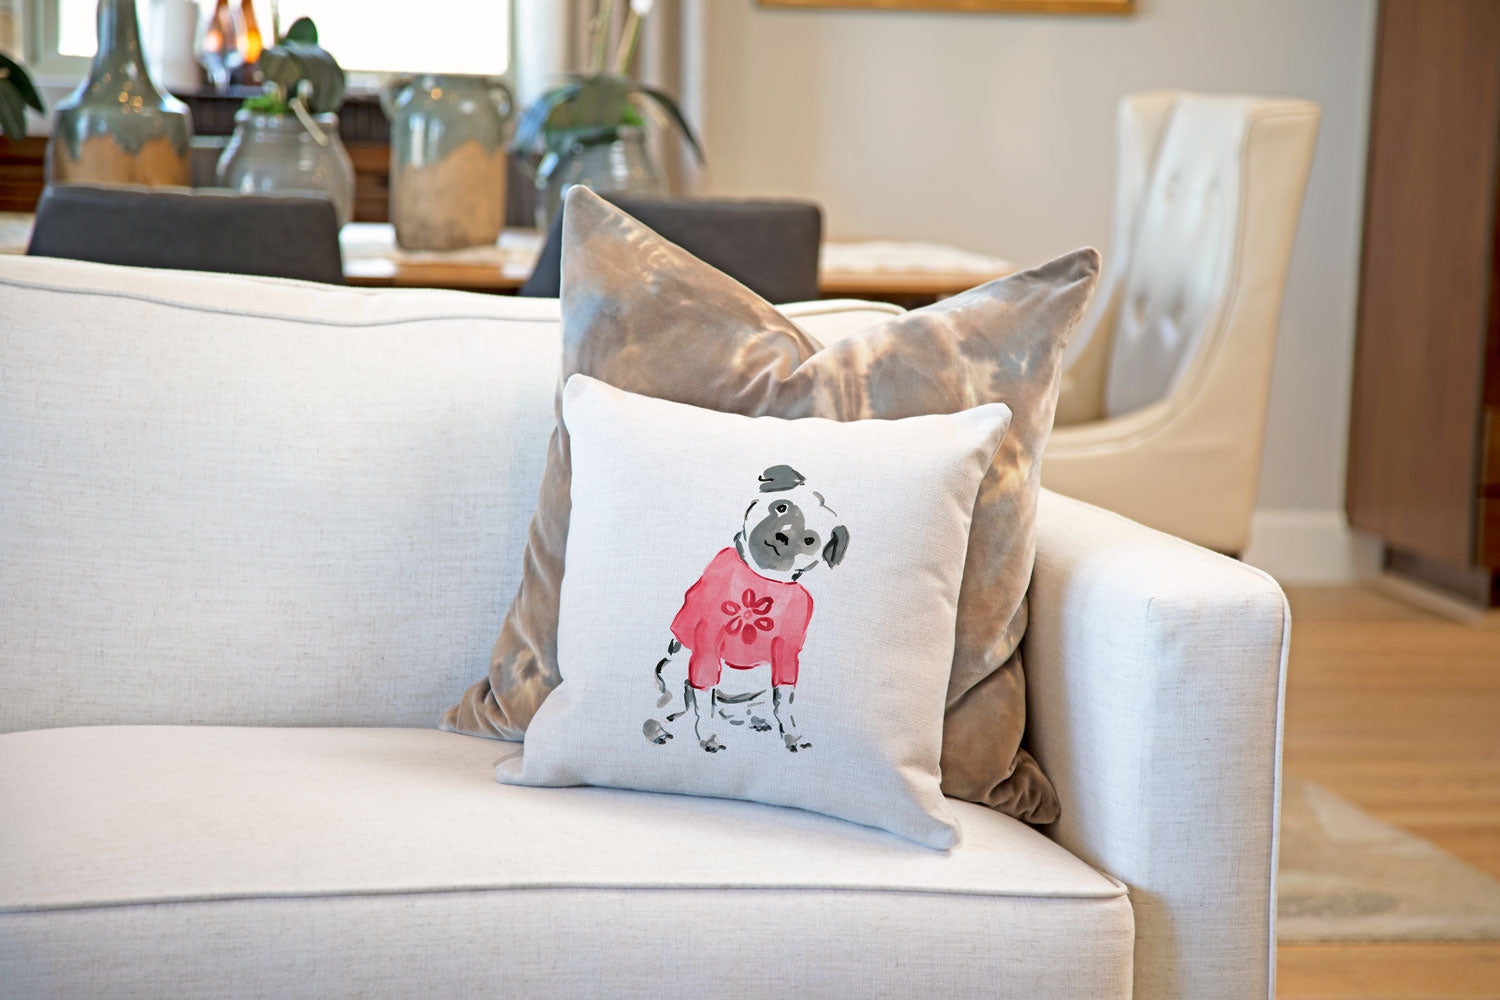 Pickles Pug Throw Pillow Cover - Dog Illustration Throw Pillow Cover Collection